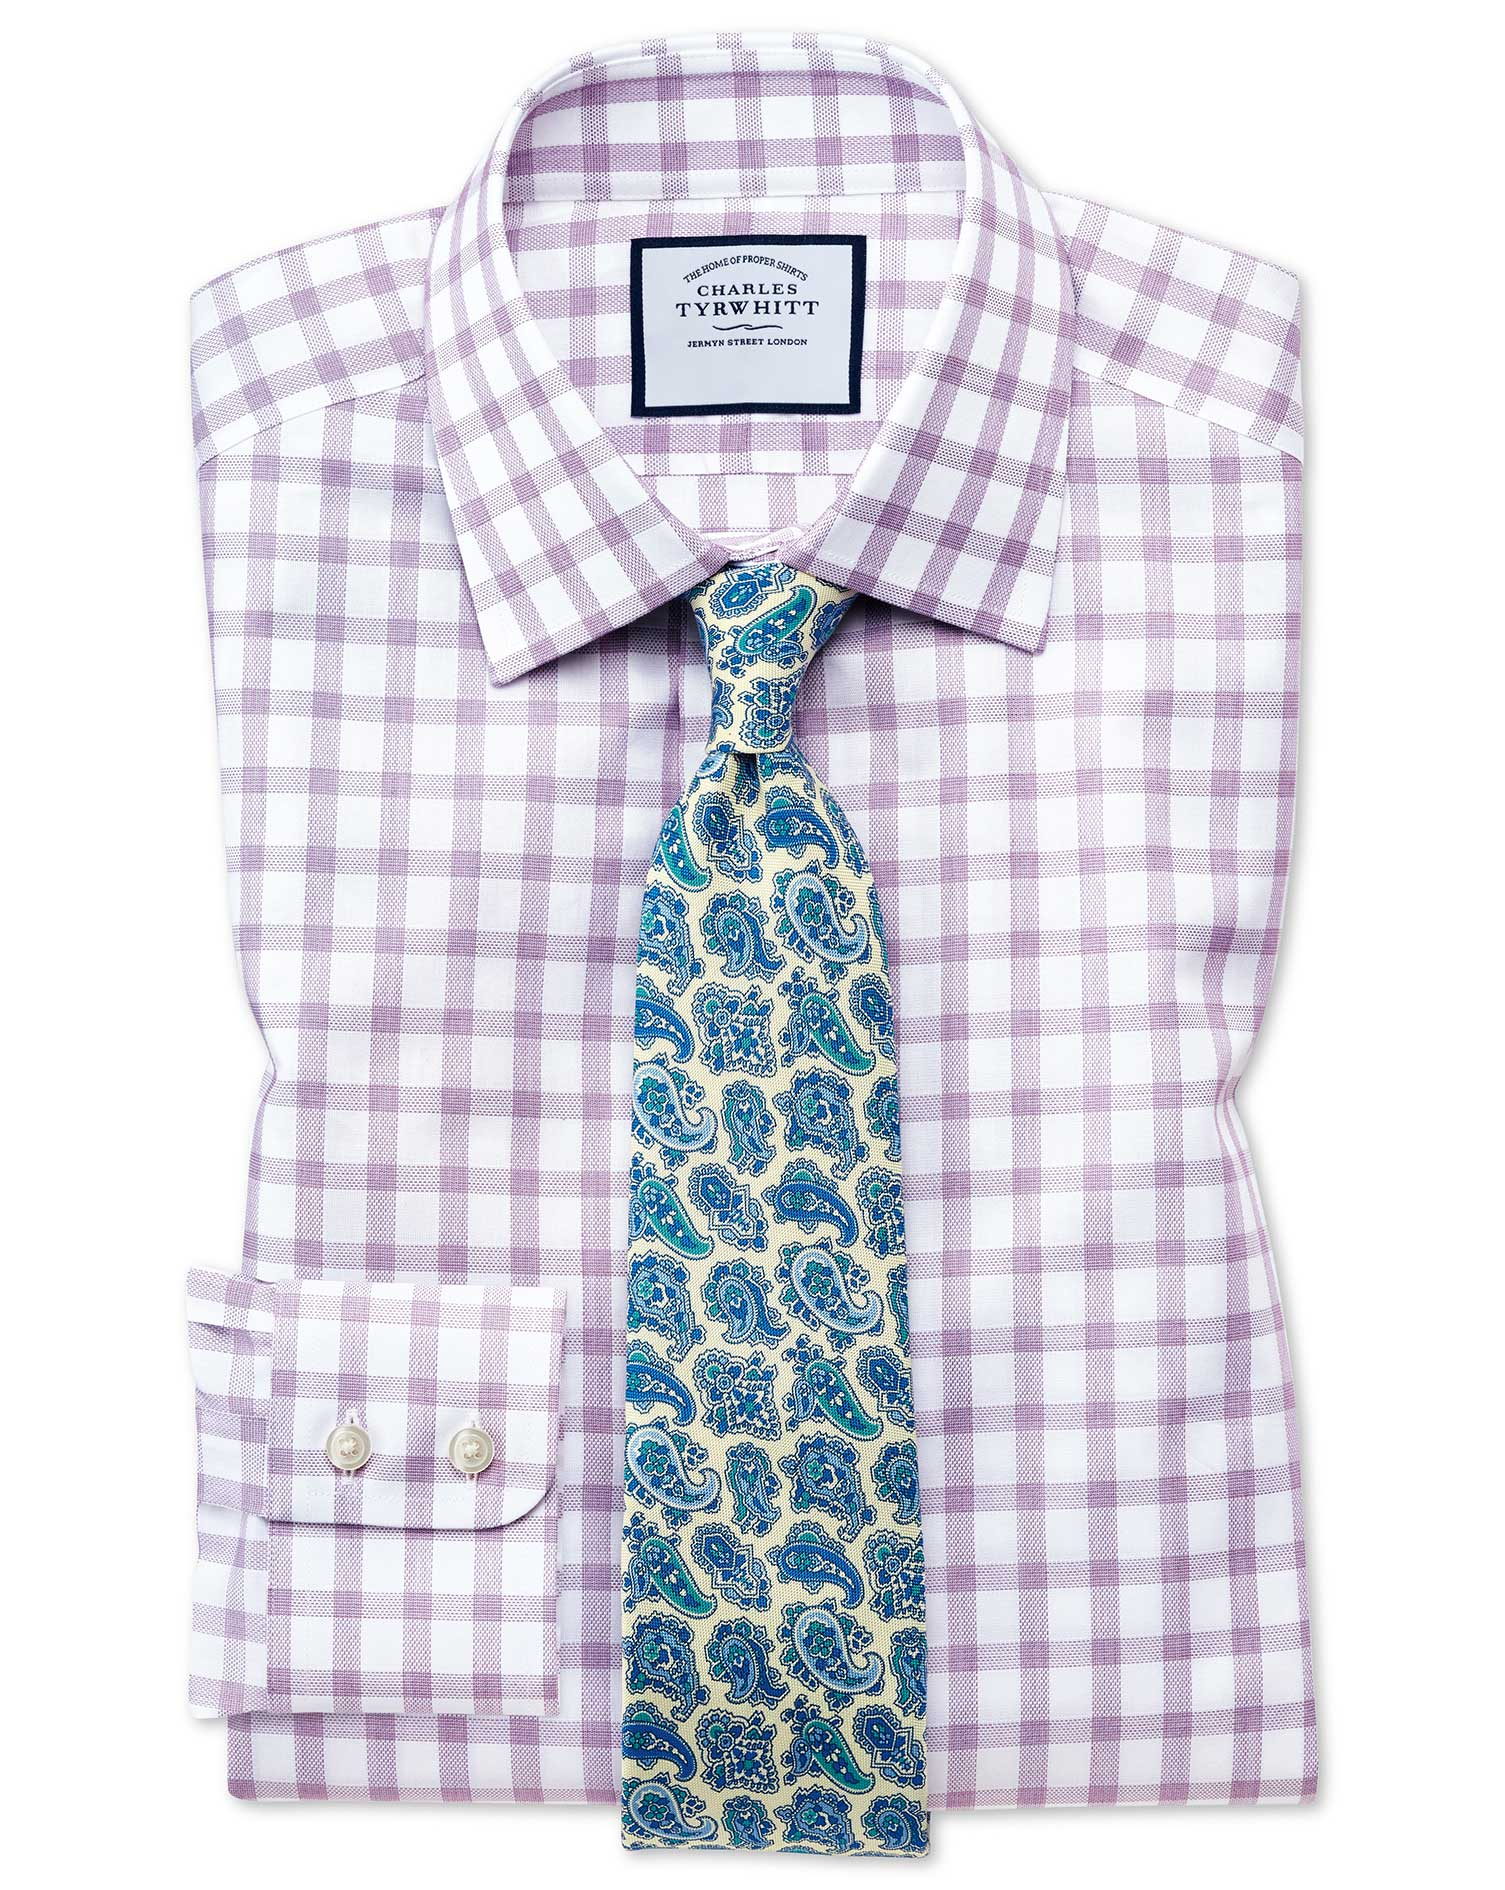 Extra Slim Fit Windowpane Check Purple Cotton Formal Shirt Single Cuff Size 14.5/33 by Charles Tyrwh